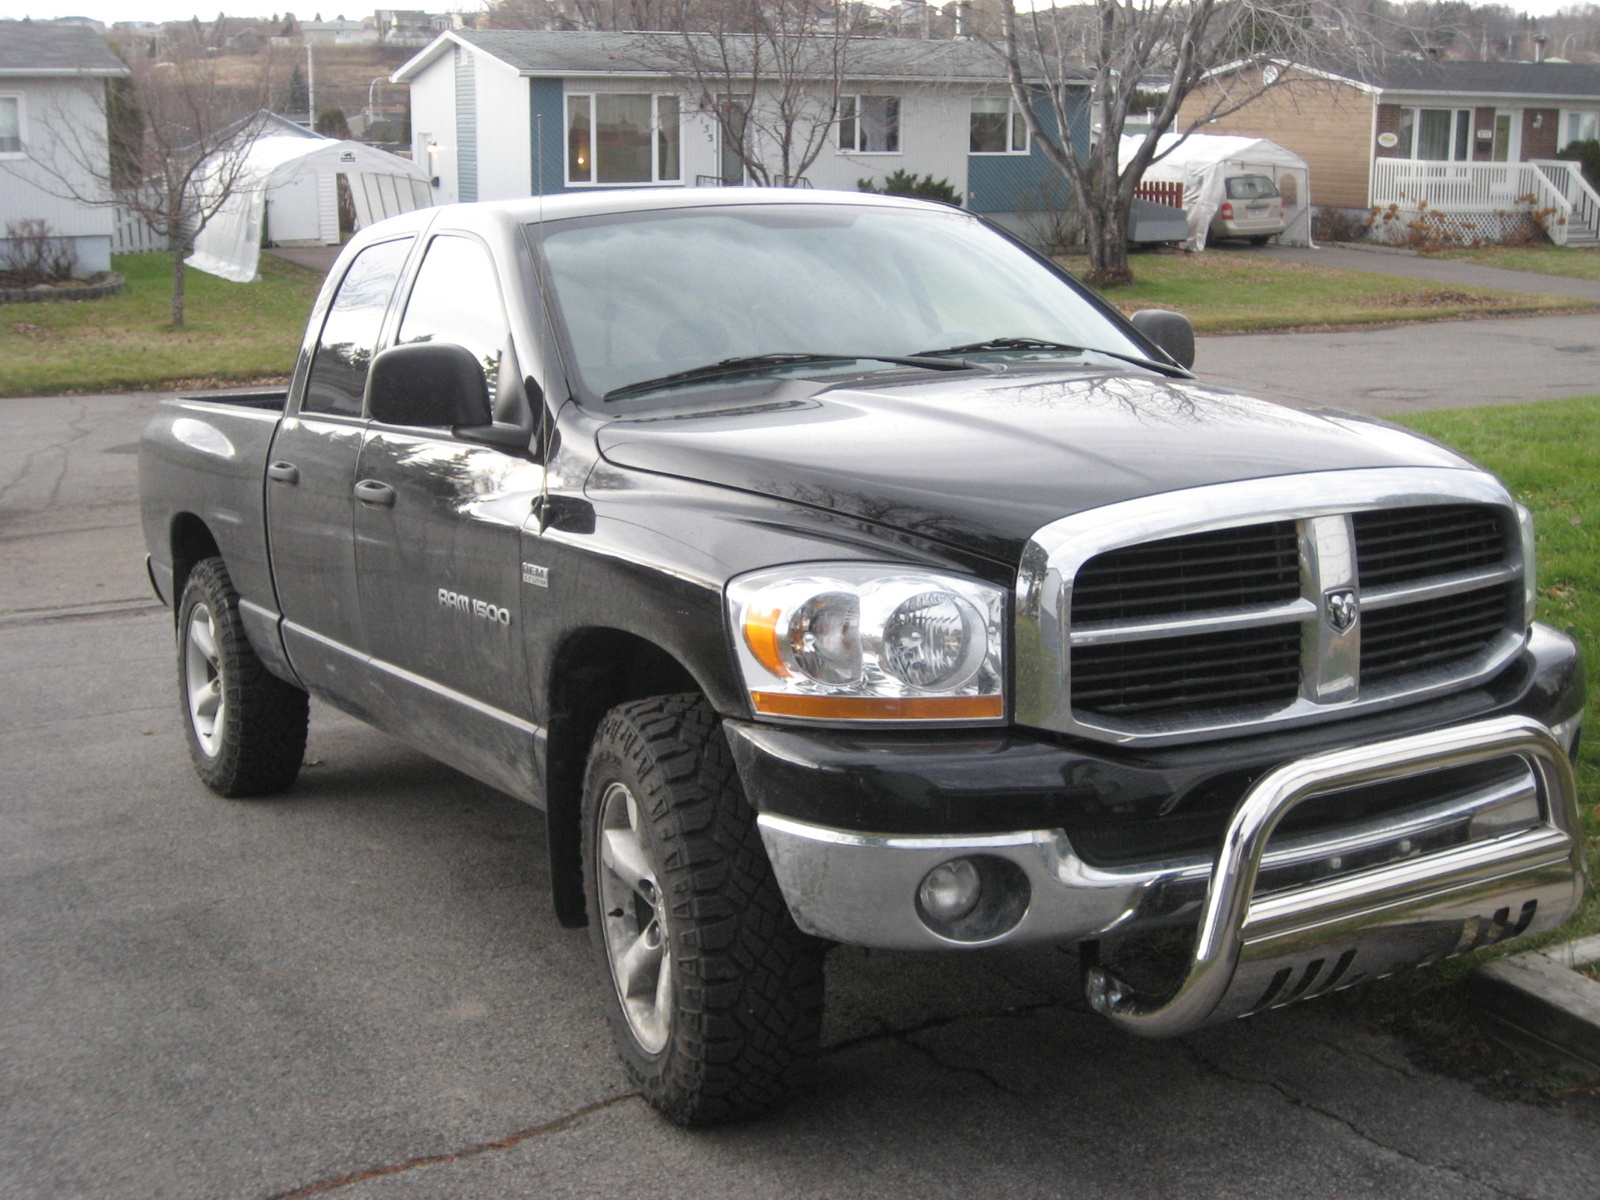 2006 dodge ram pickup 1500 slt 4dr quad cab 4wd sb picture exterior. Black Bedroom Furniture Sets. Home Design Ideas